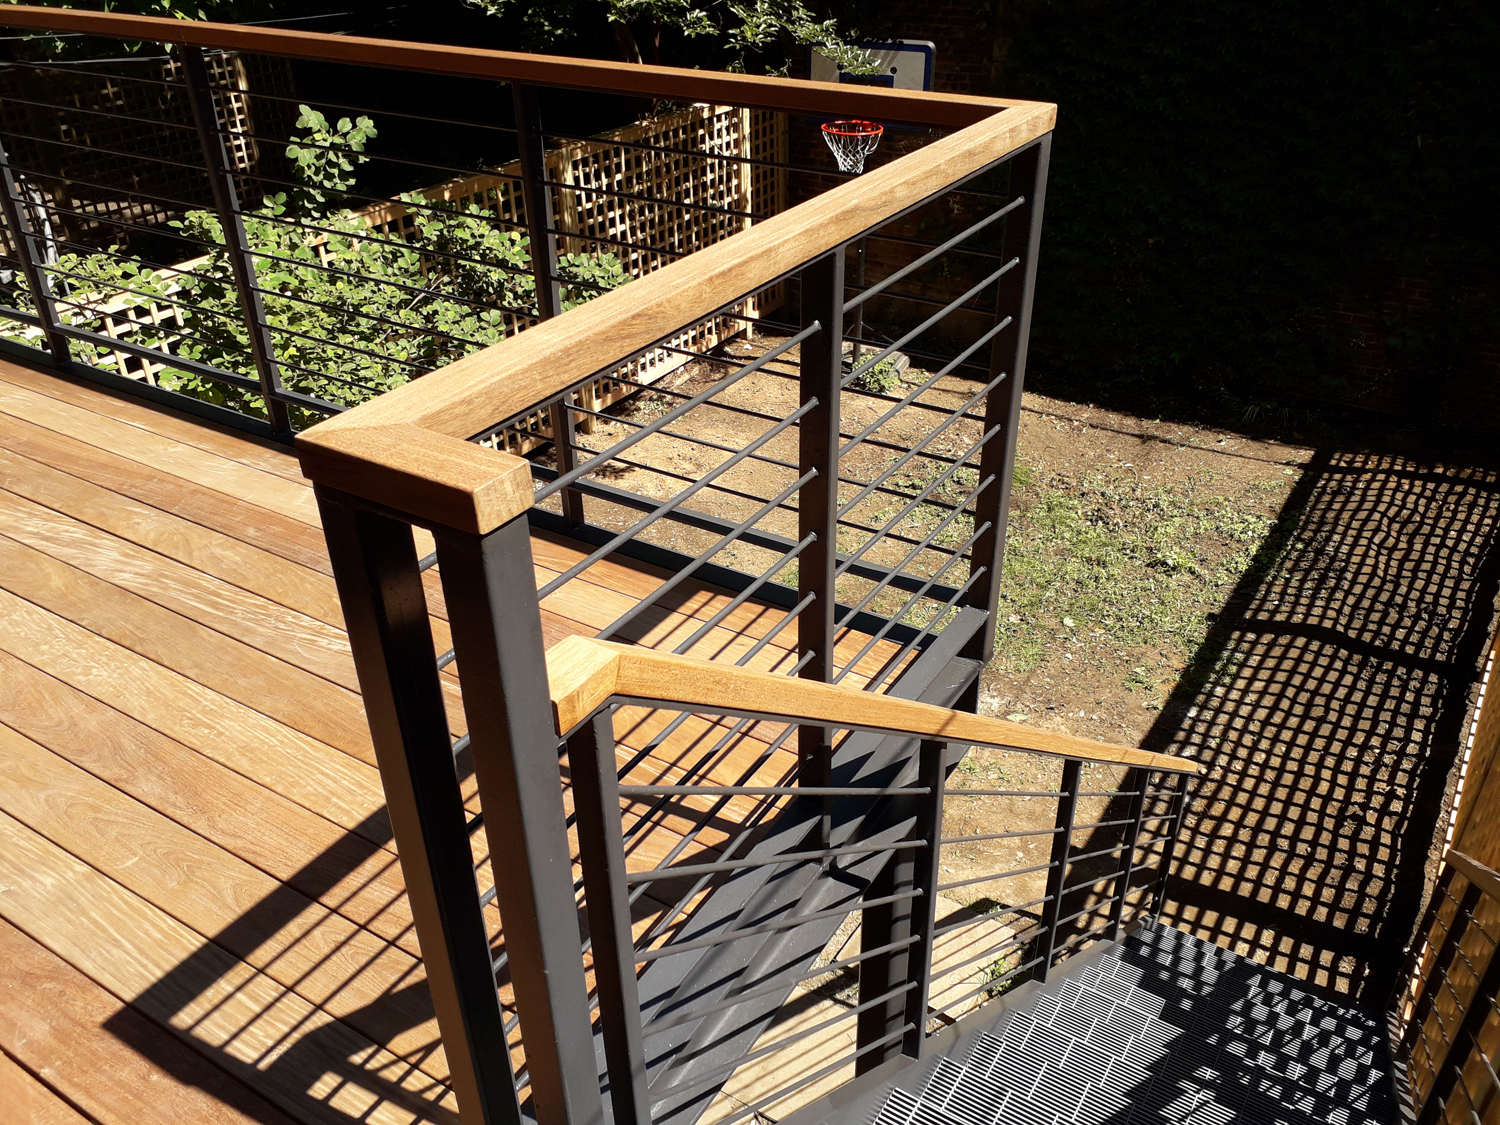 Steel deck with ipe decking and handrail.